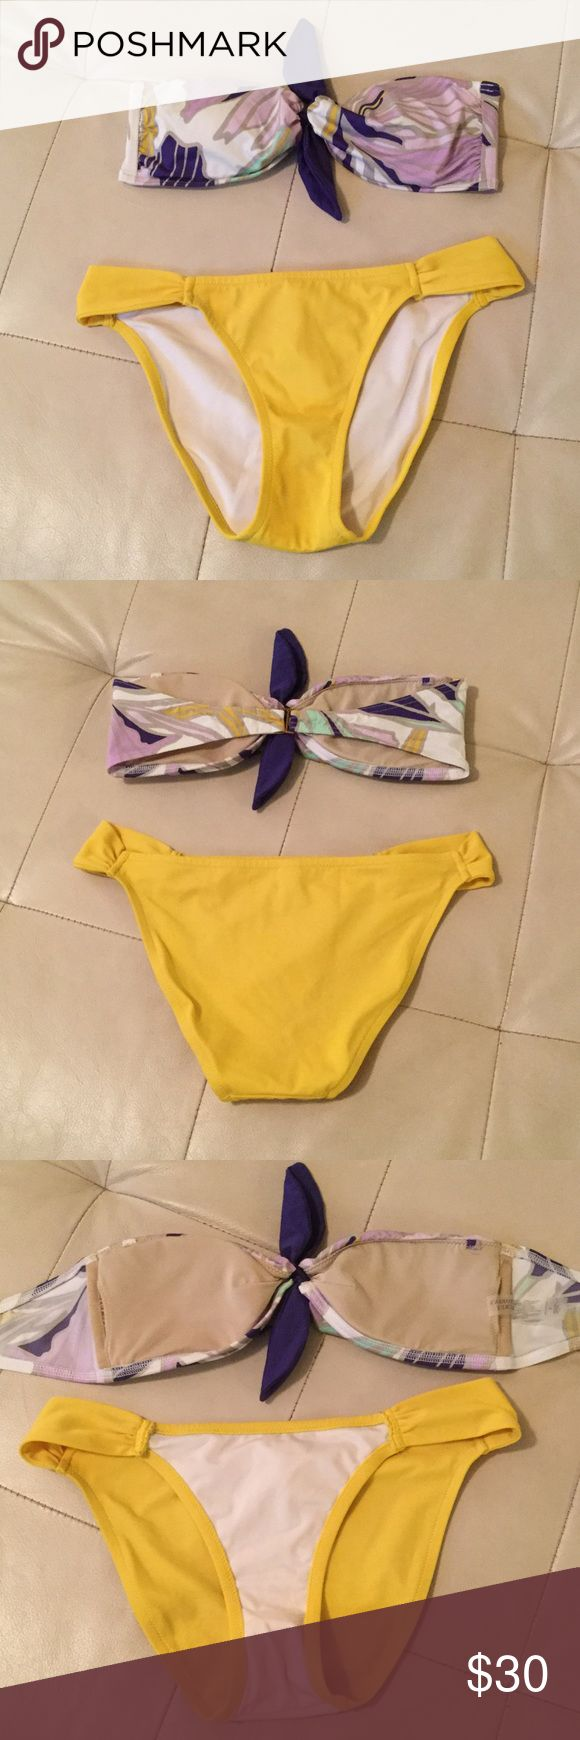 Victoria's Secret bathing suit Super cute Victoria's Secret bikini,  excellent condition! Yellow bottoms multi color bandeau top with yellow and purple accents! I extra strap not included. Victoria's Secret Swim Bikinis